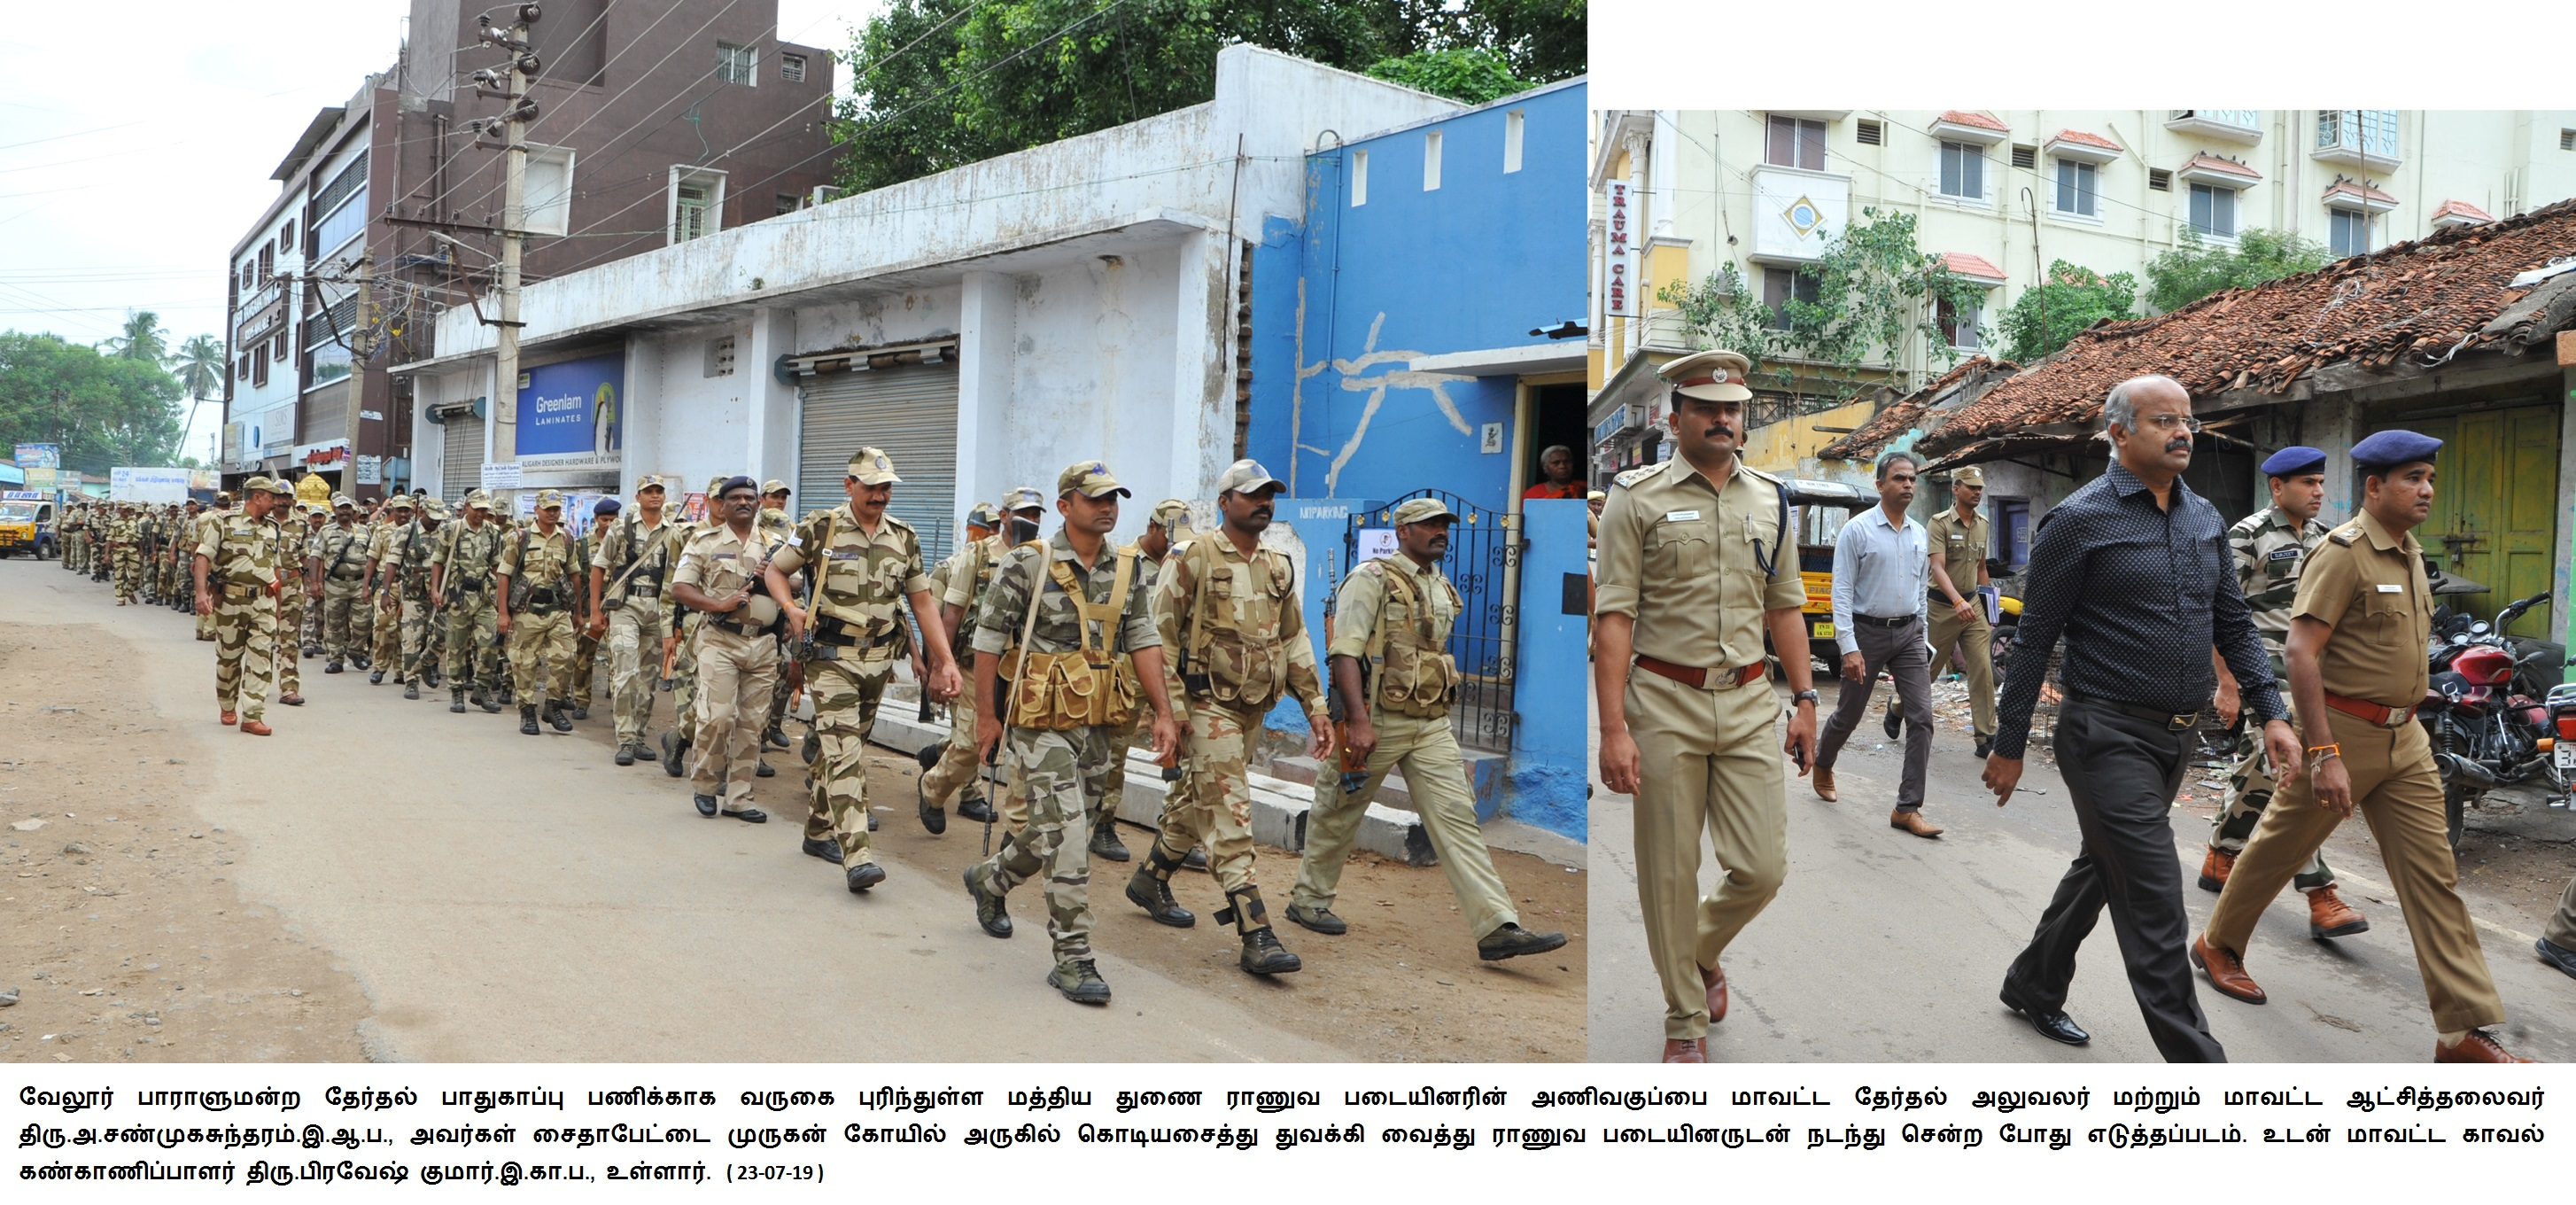 Central Paramilitary forces arrived for Vellore Parliamentary Election 23/07/2019